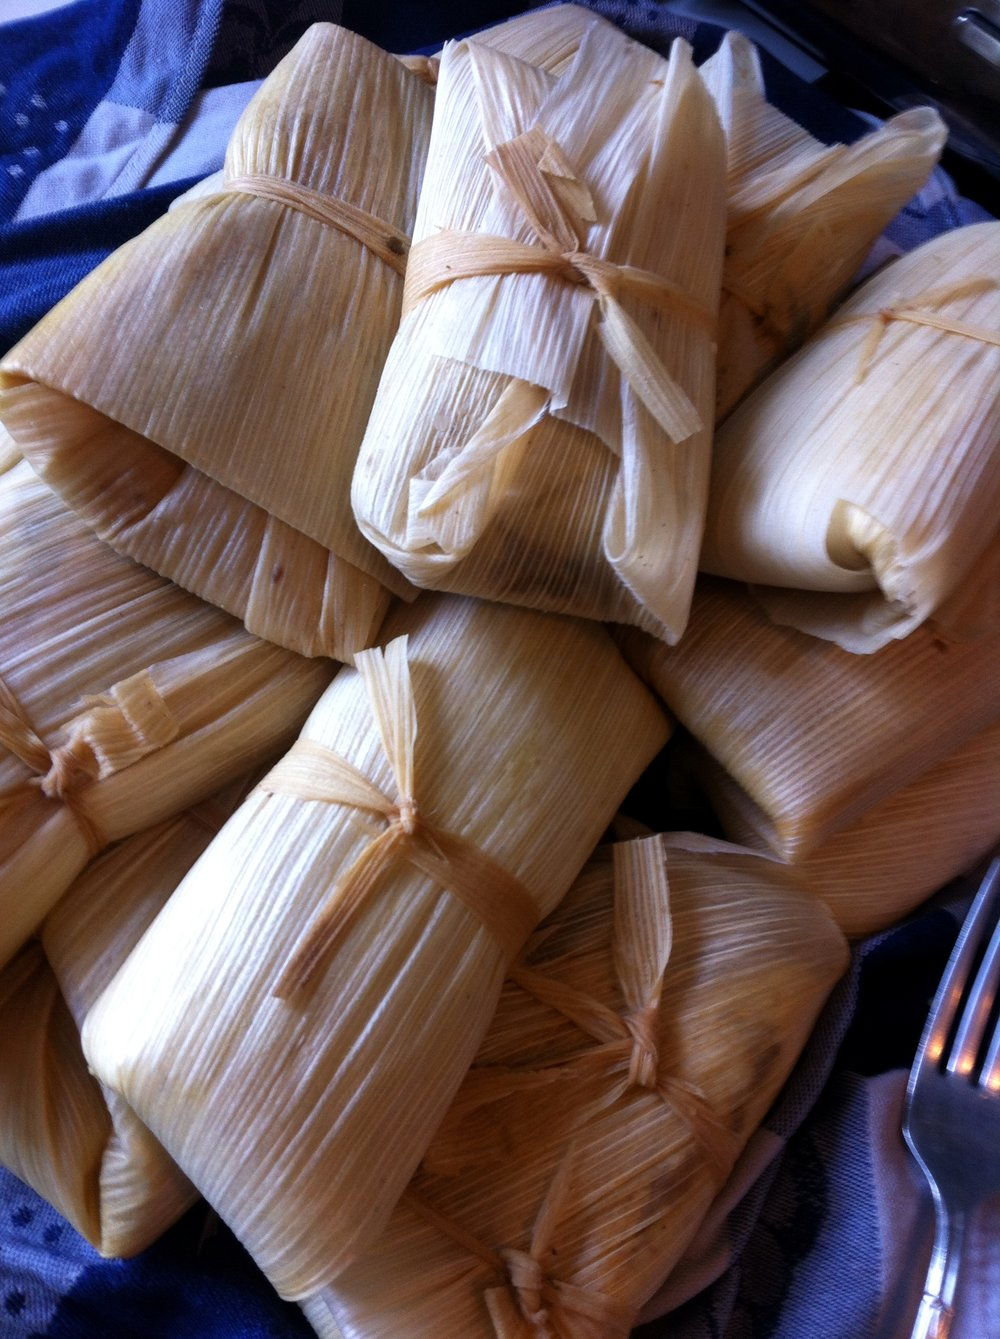 Peruvian tamales - corn husks filled with masa (corn dough) and chipotle vegetables